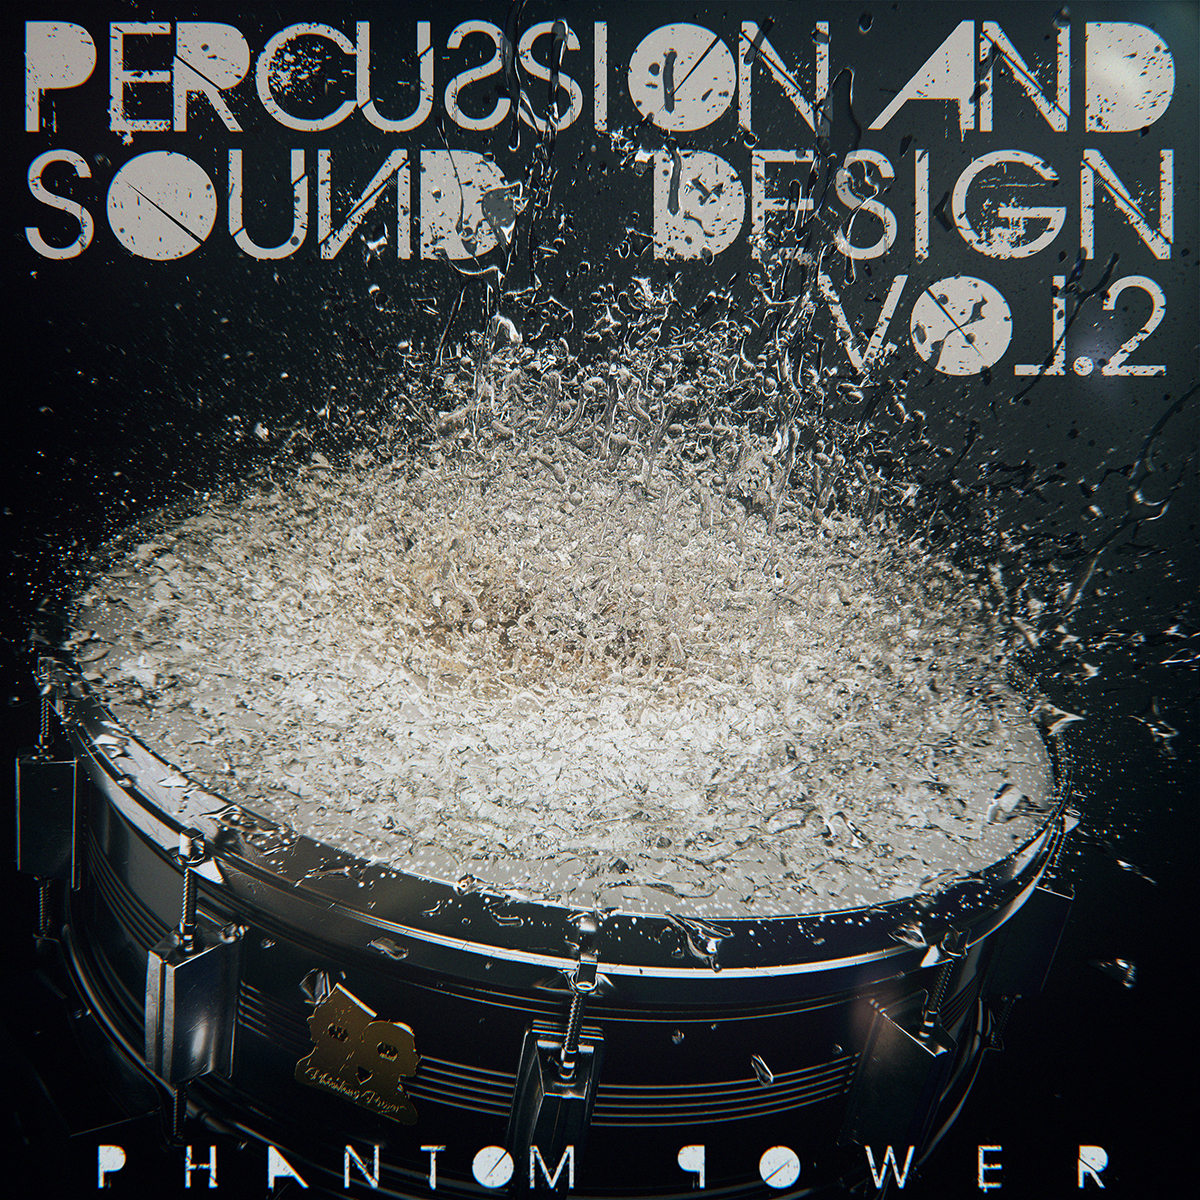 Percussion and Sound Design Vol.2